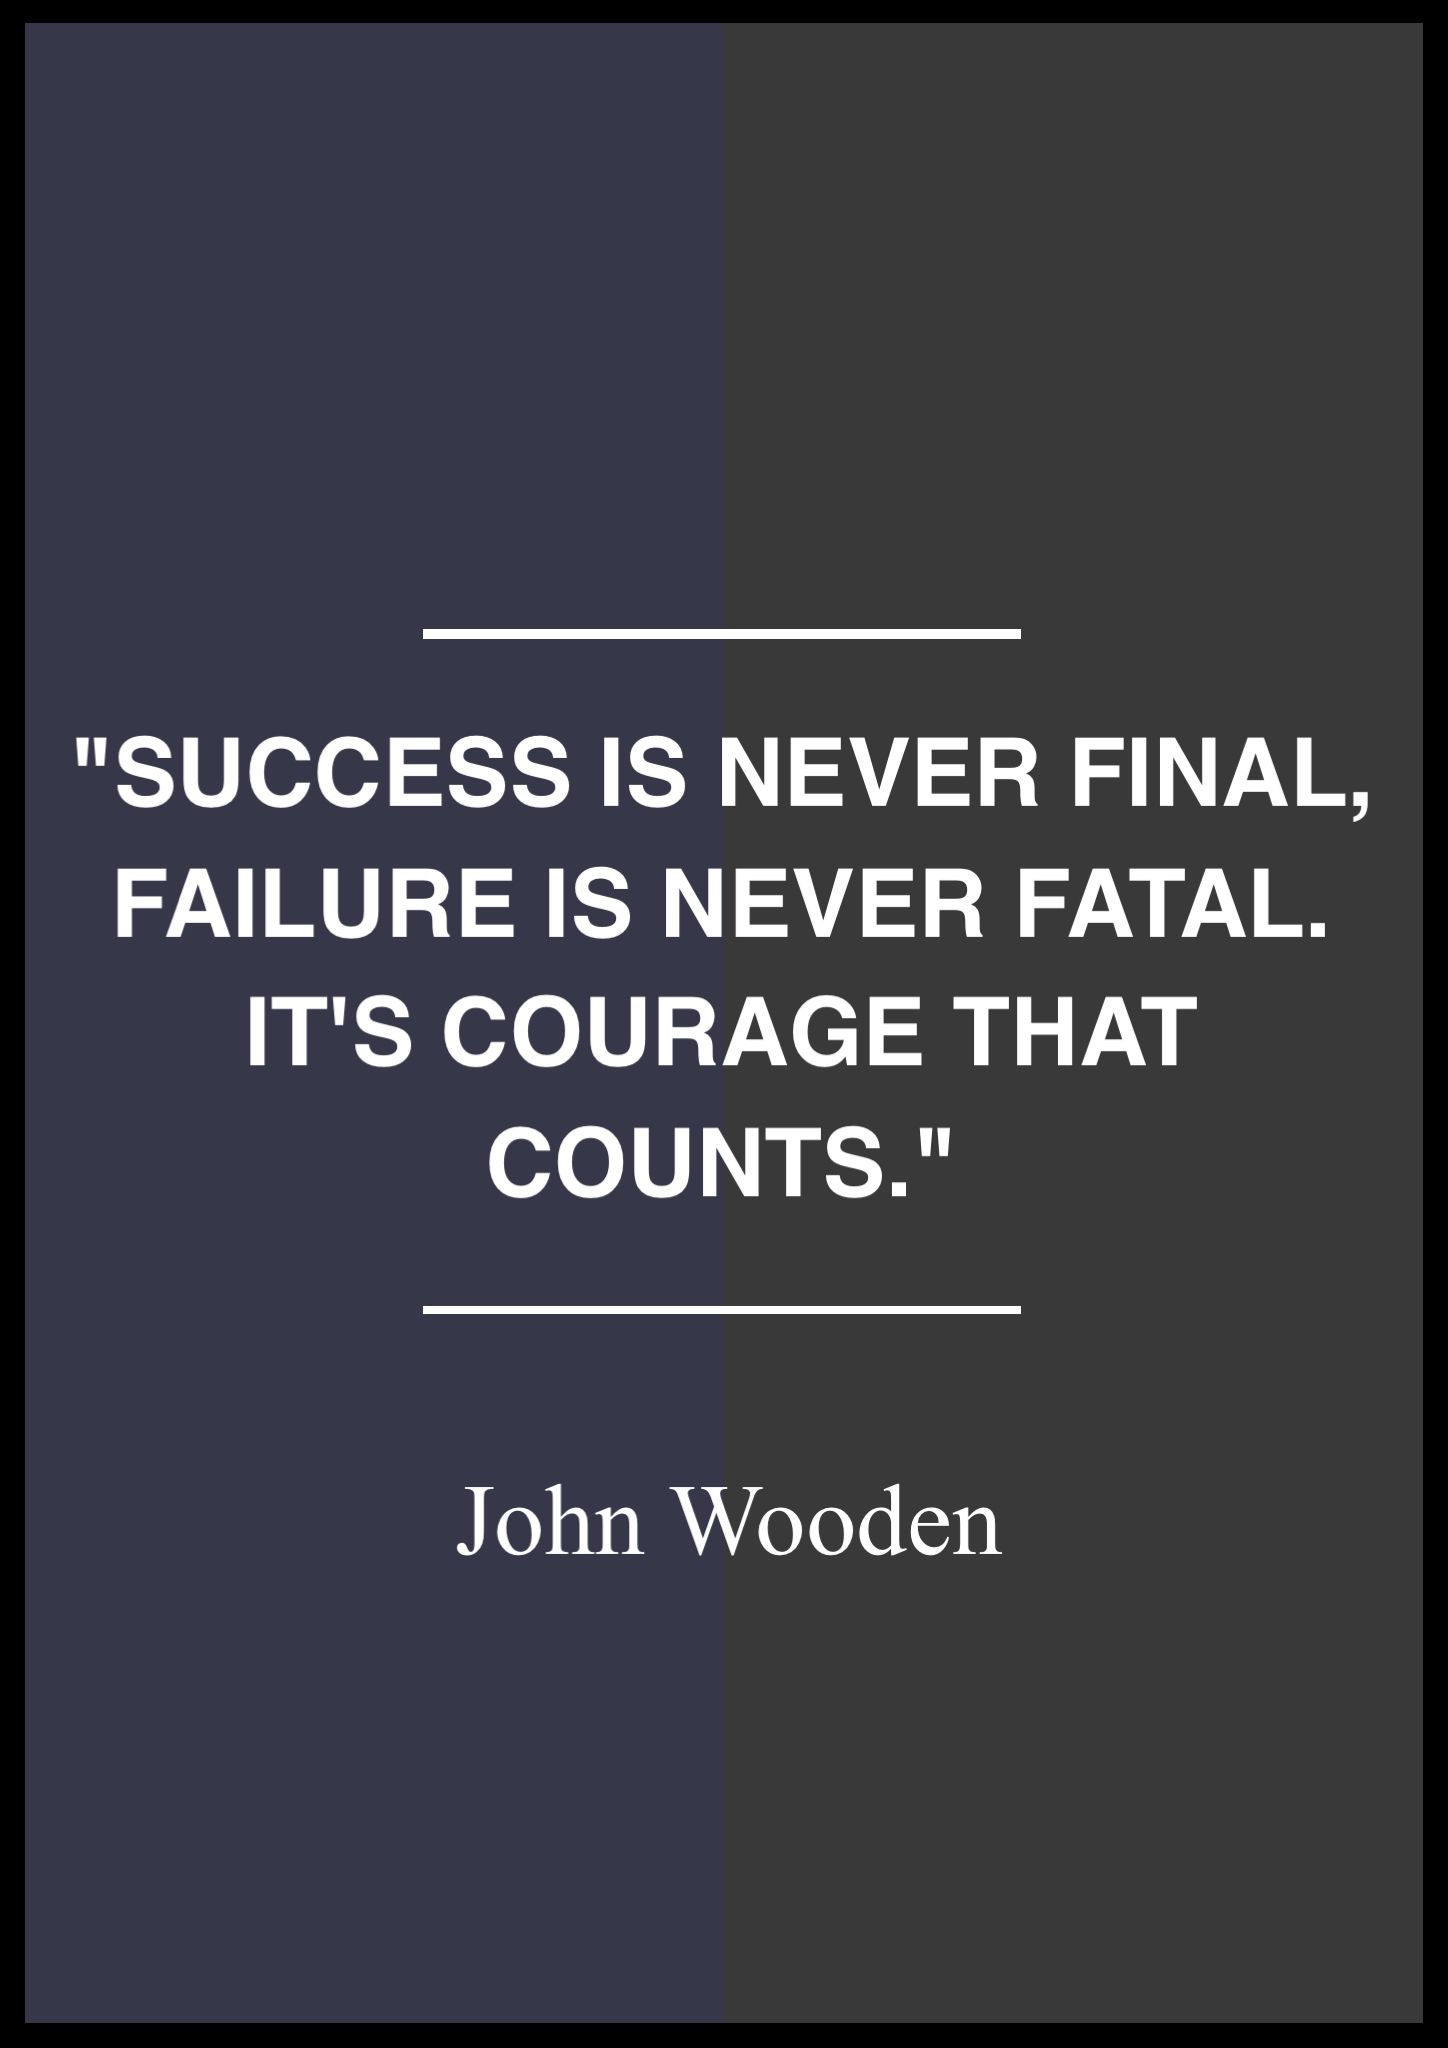 Finals Quotes Success Is Never Final Failure Is Never Fatalit's Courage That